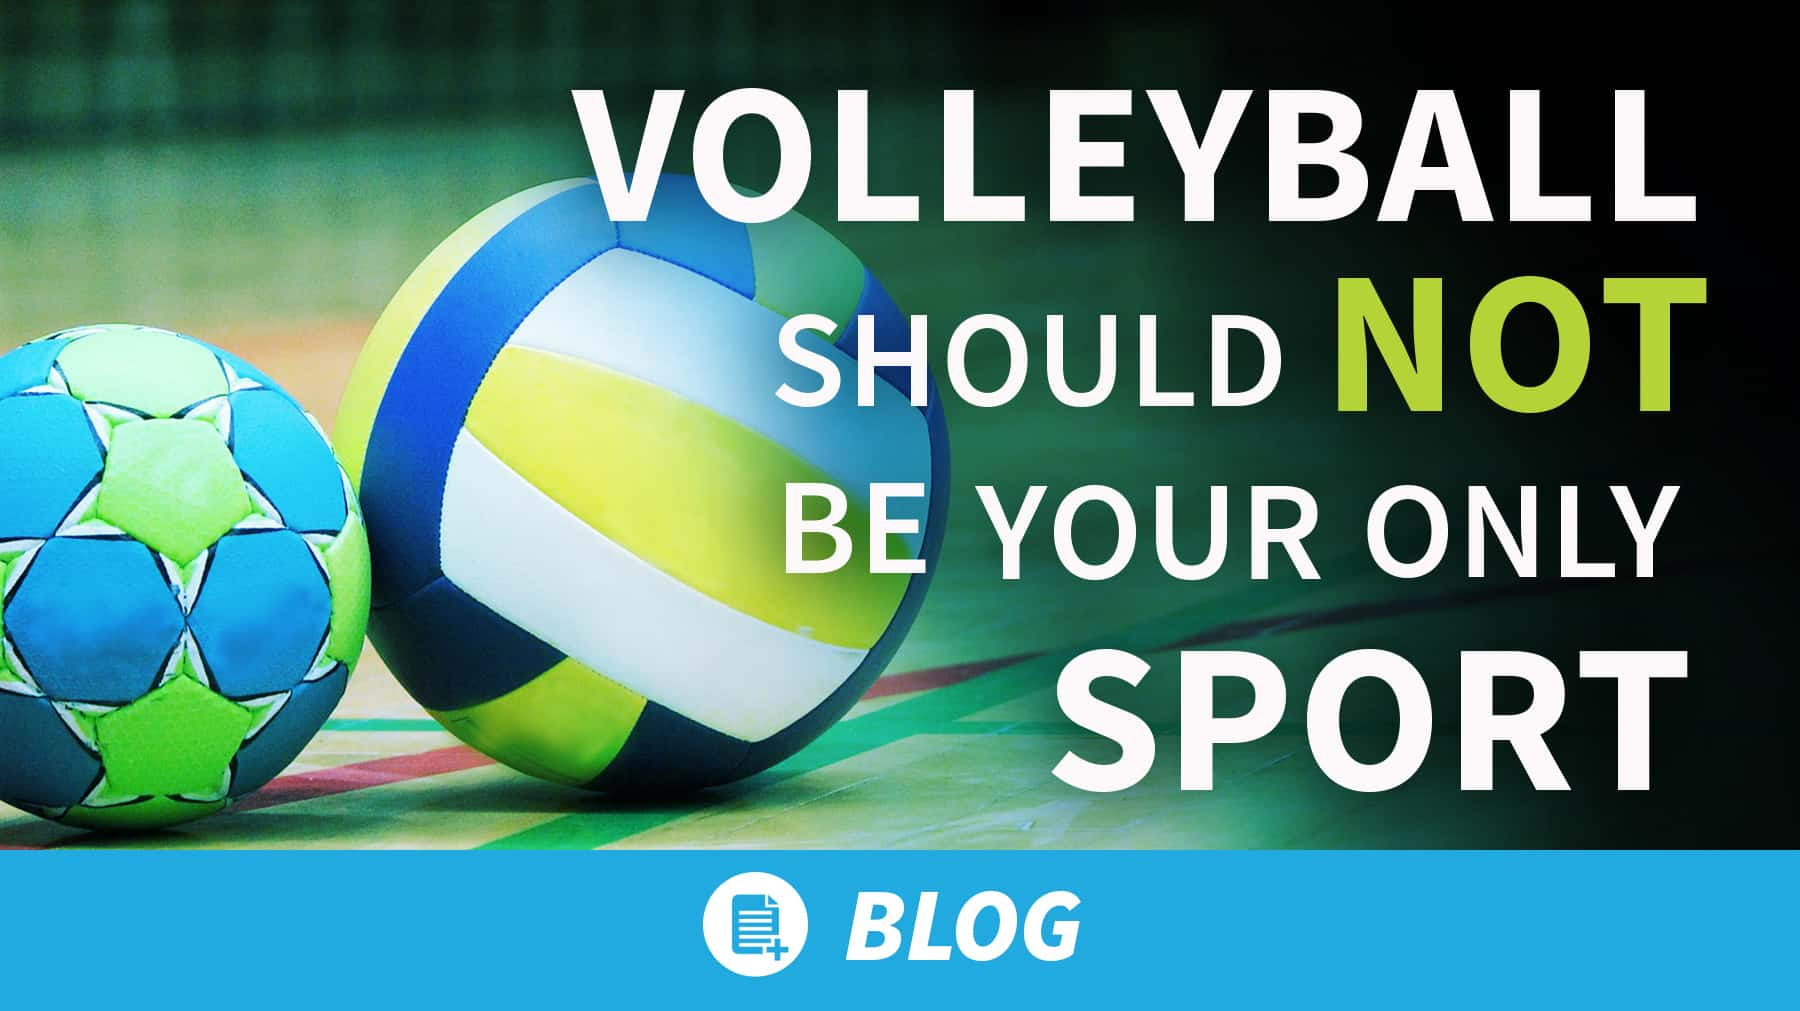 Volleyball should NOT be your only sport